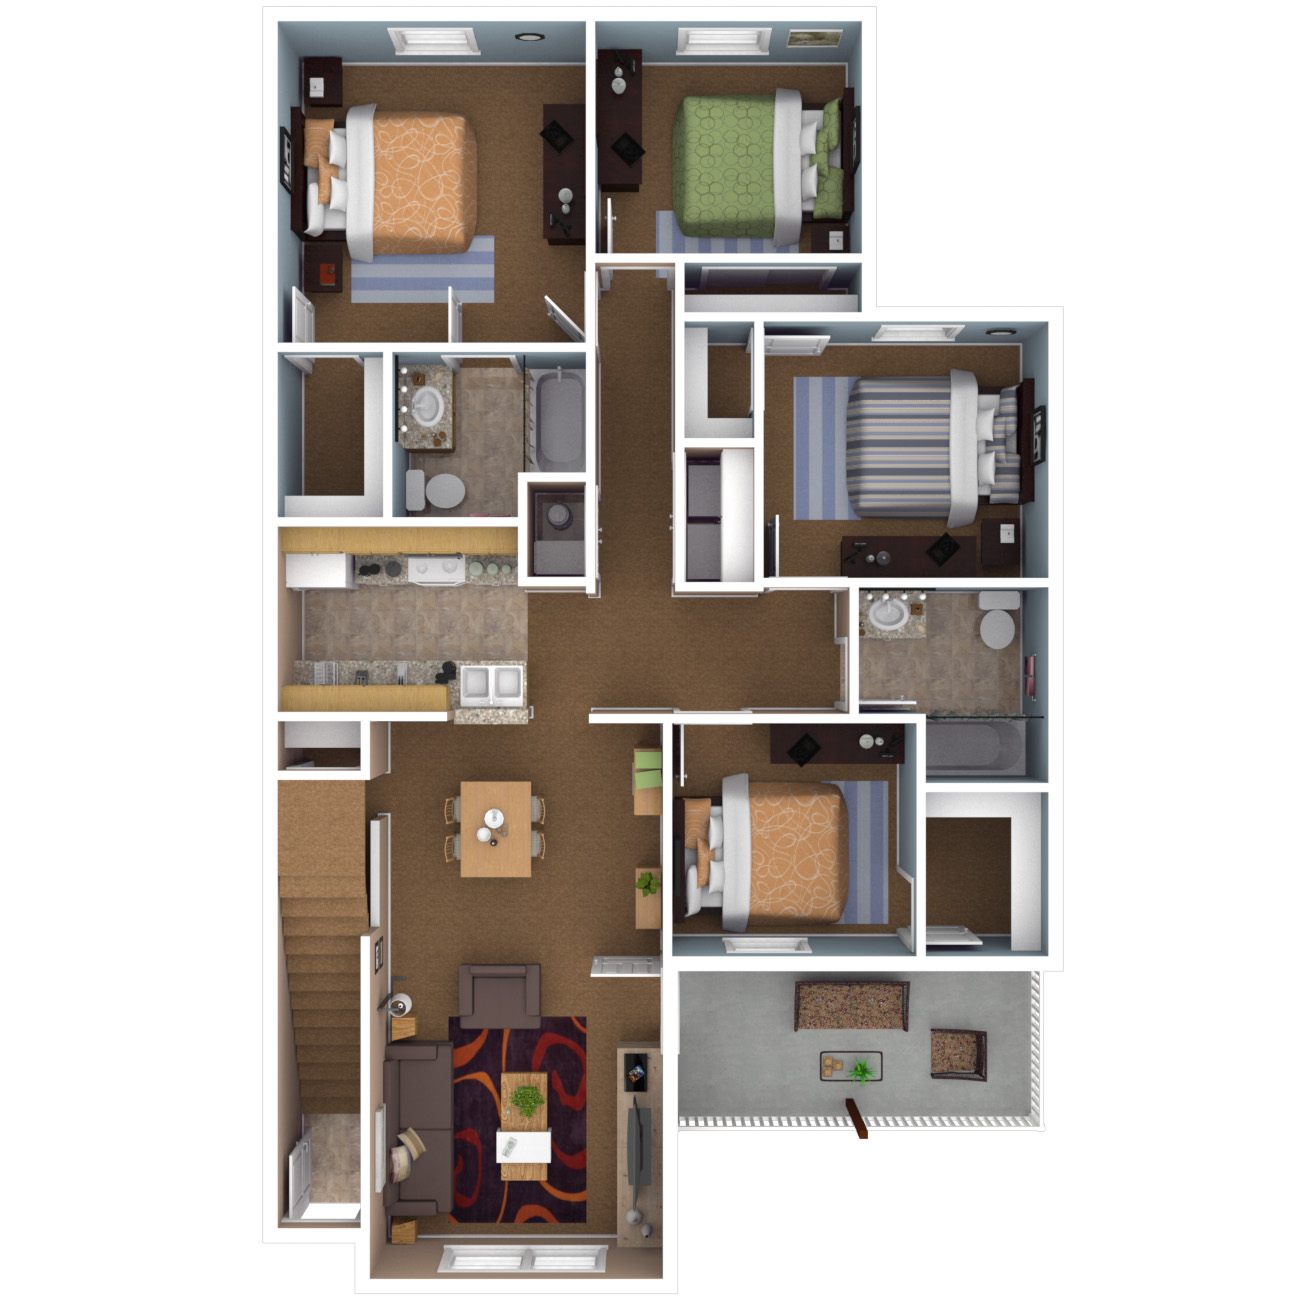 Apartments in indianapolis floor plans for 4 apartment building plans